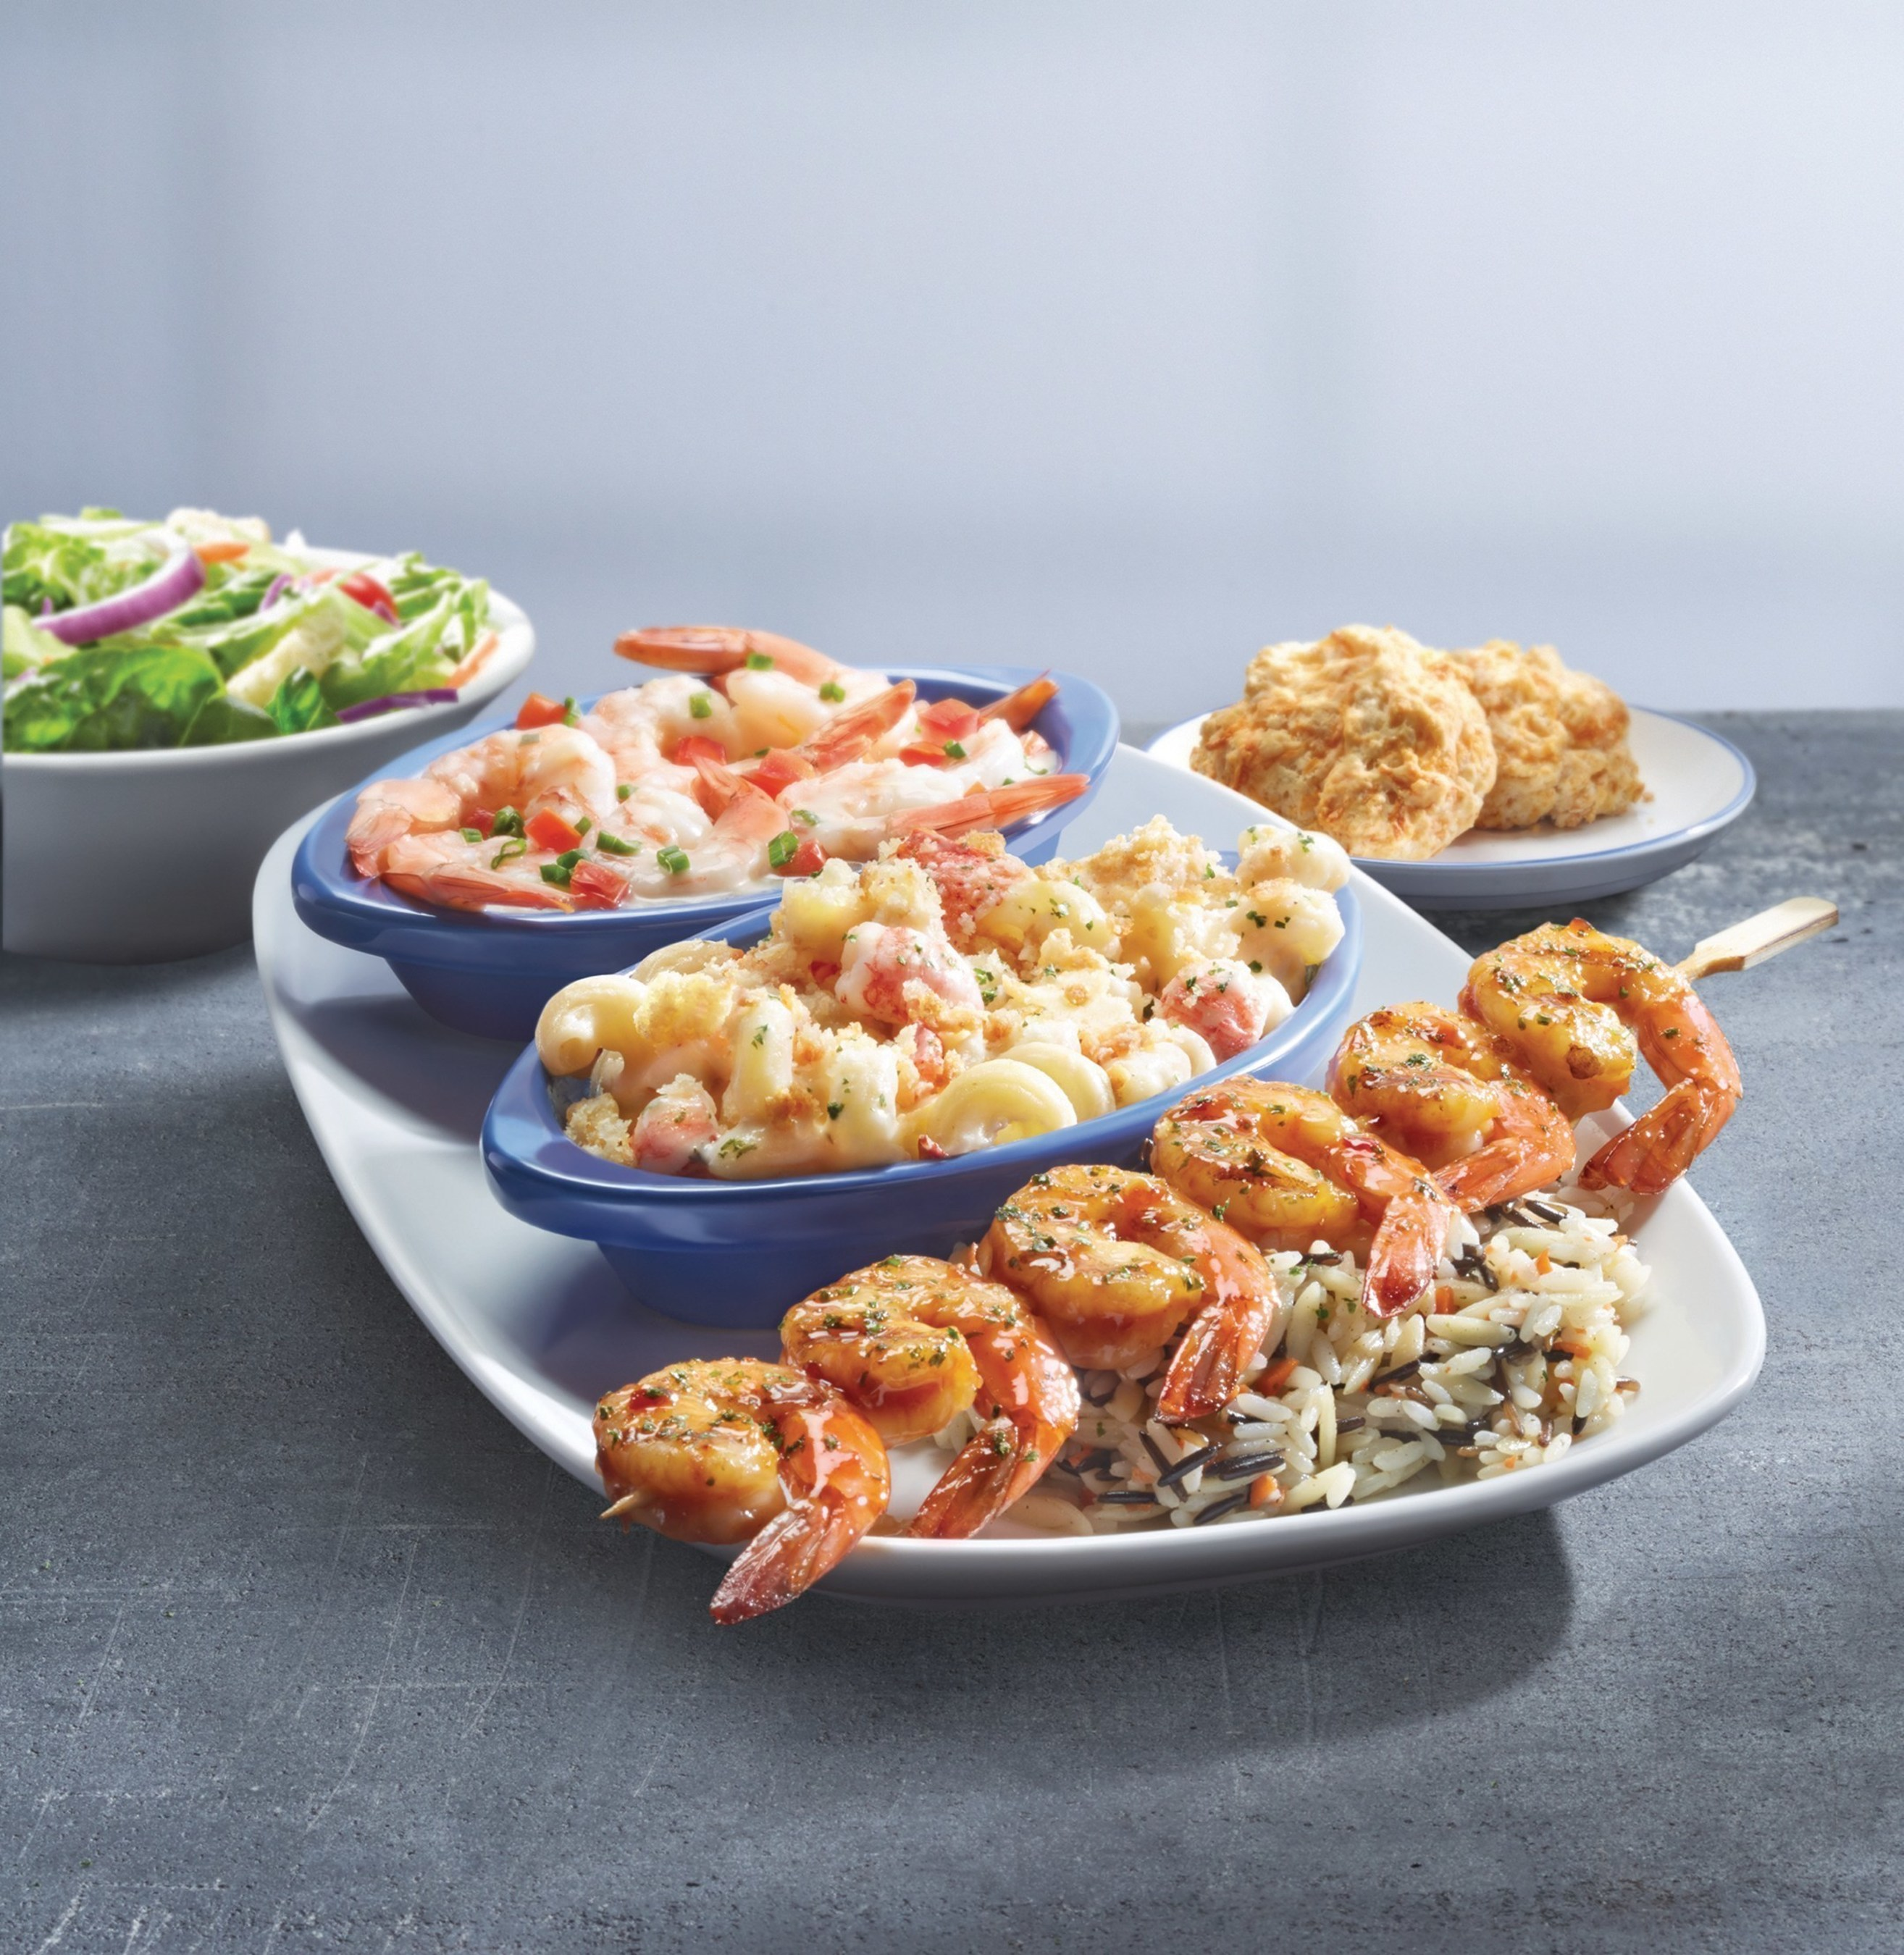 Red Lobster's Create Your Own Seafood Trio event lets guests mix and match flavors and preparations to build the perfect plate, like the NEW! Wood-Grilled Spicy Tennessee Bourbon Shrimp, Baked Lobster Alfredo and Lemon Garlic Butter Shrimp.